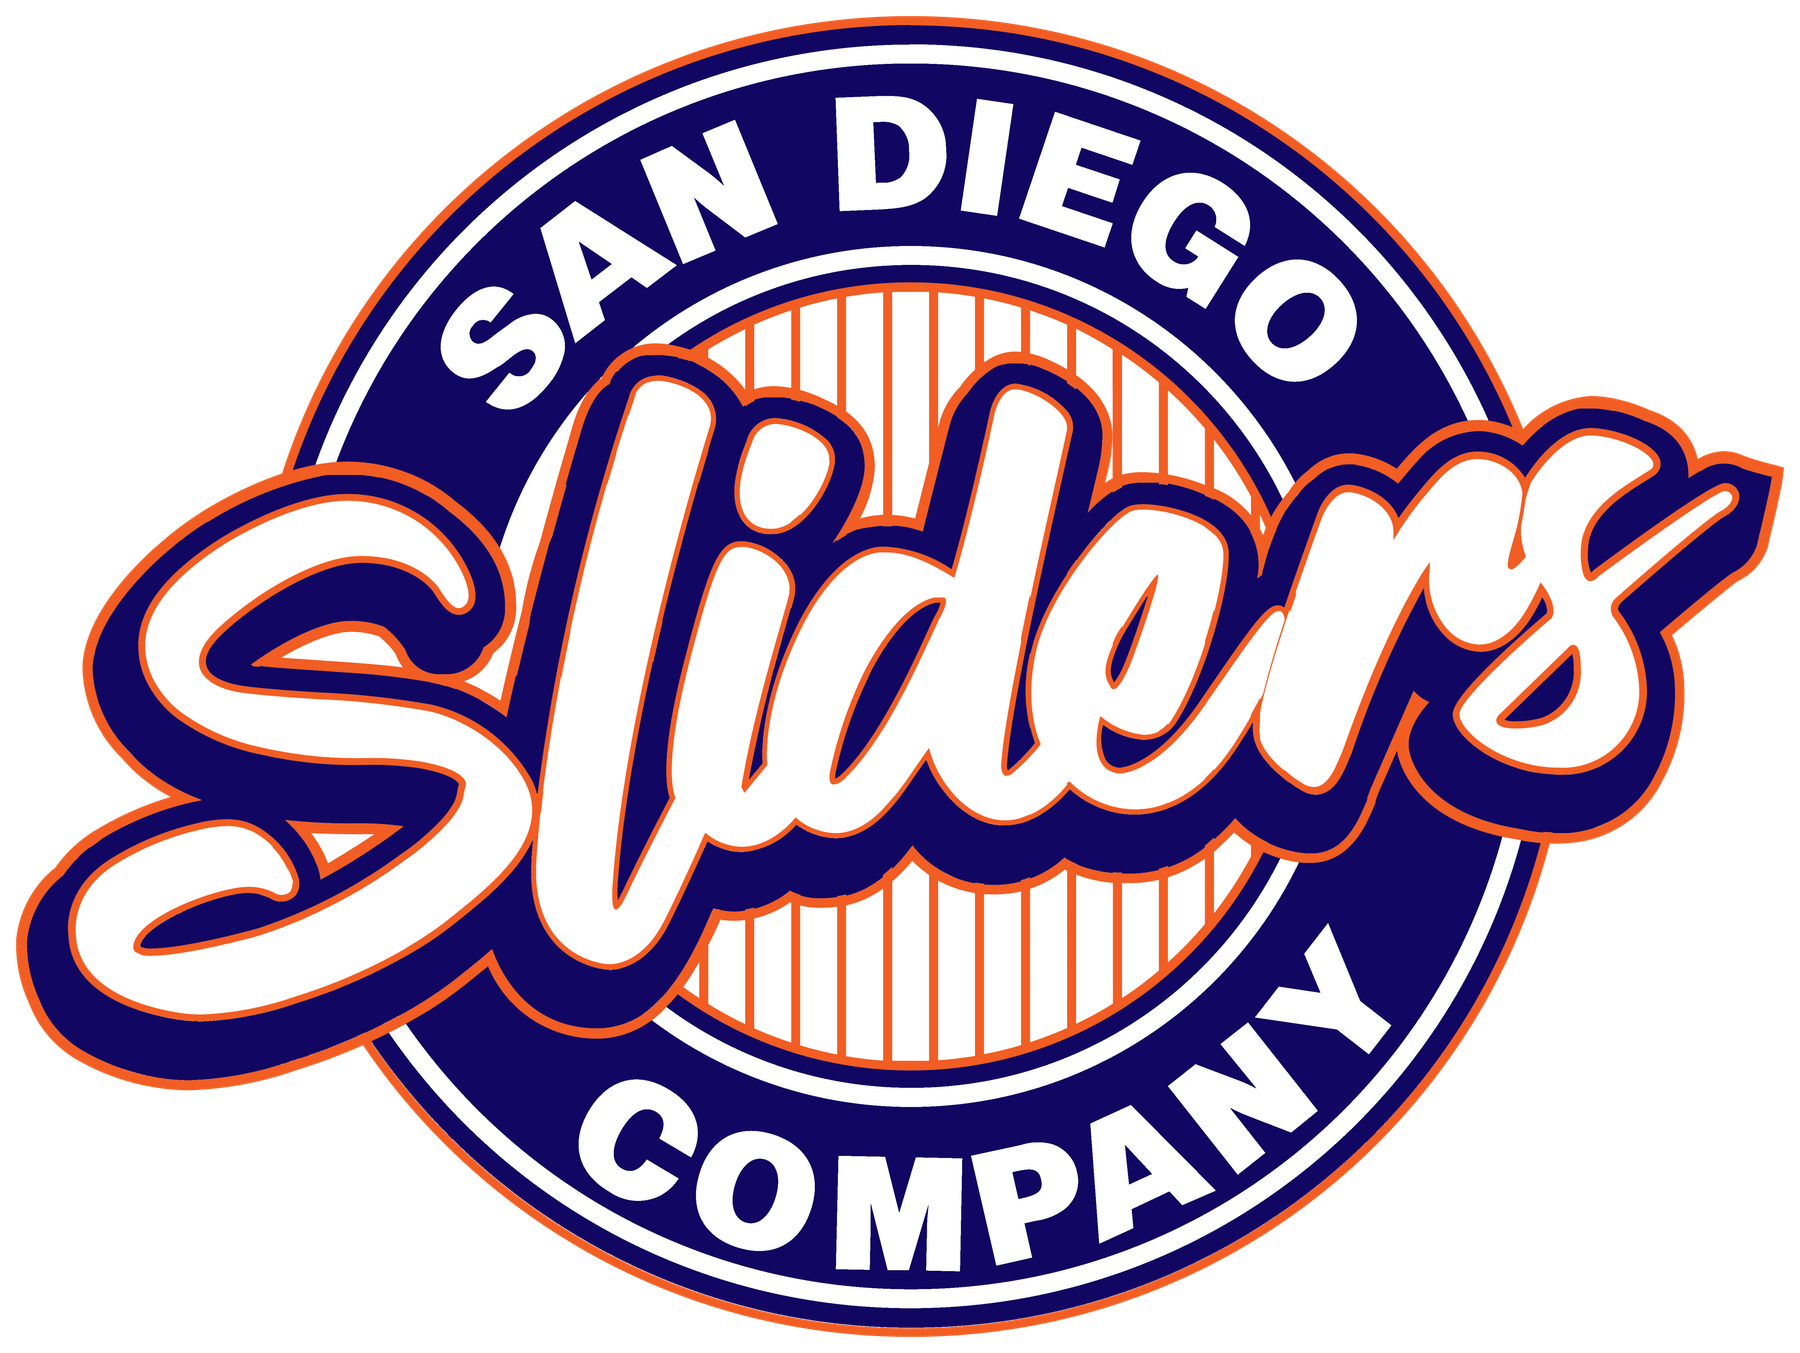 San Diego Sliders Co Home